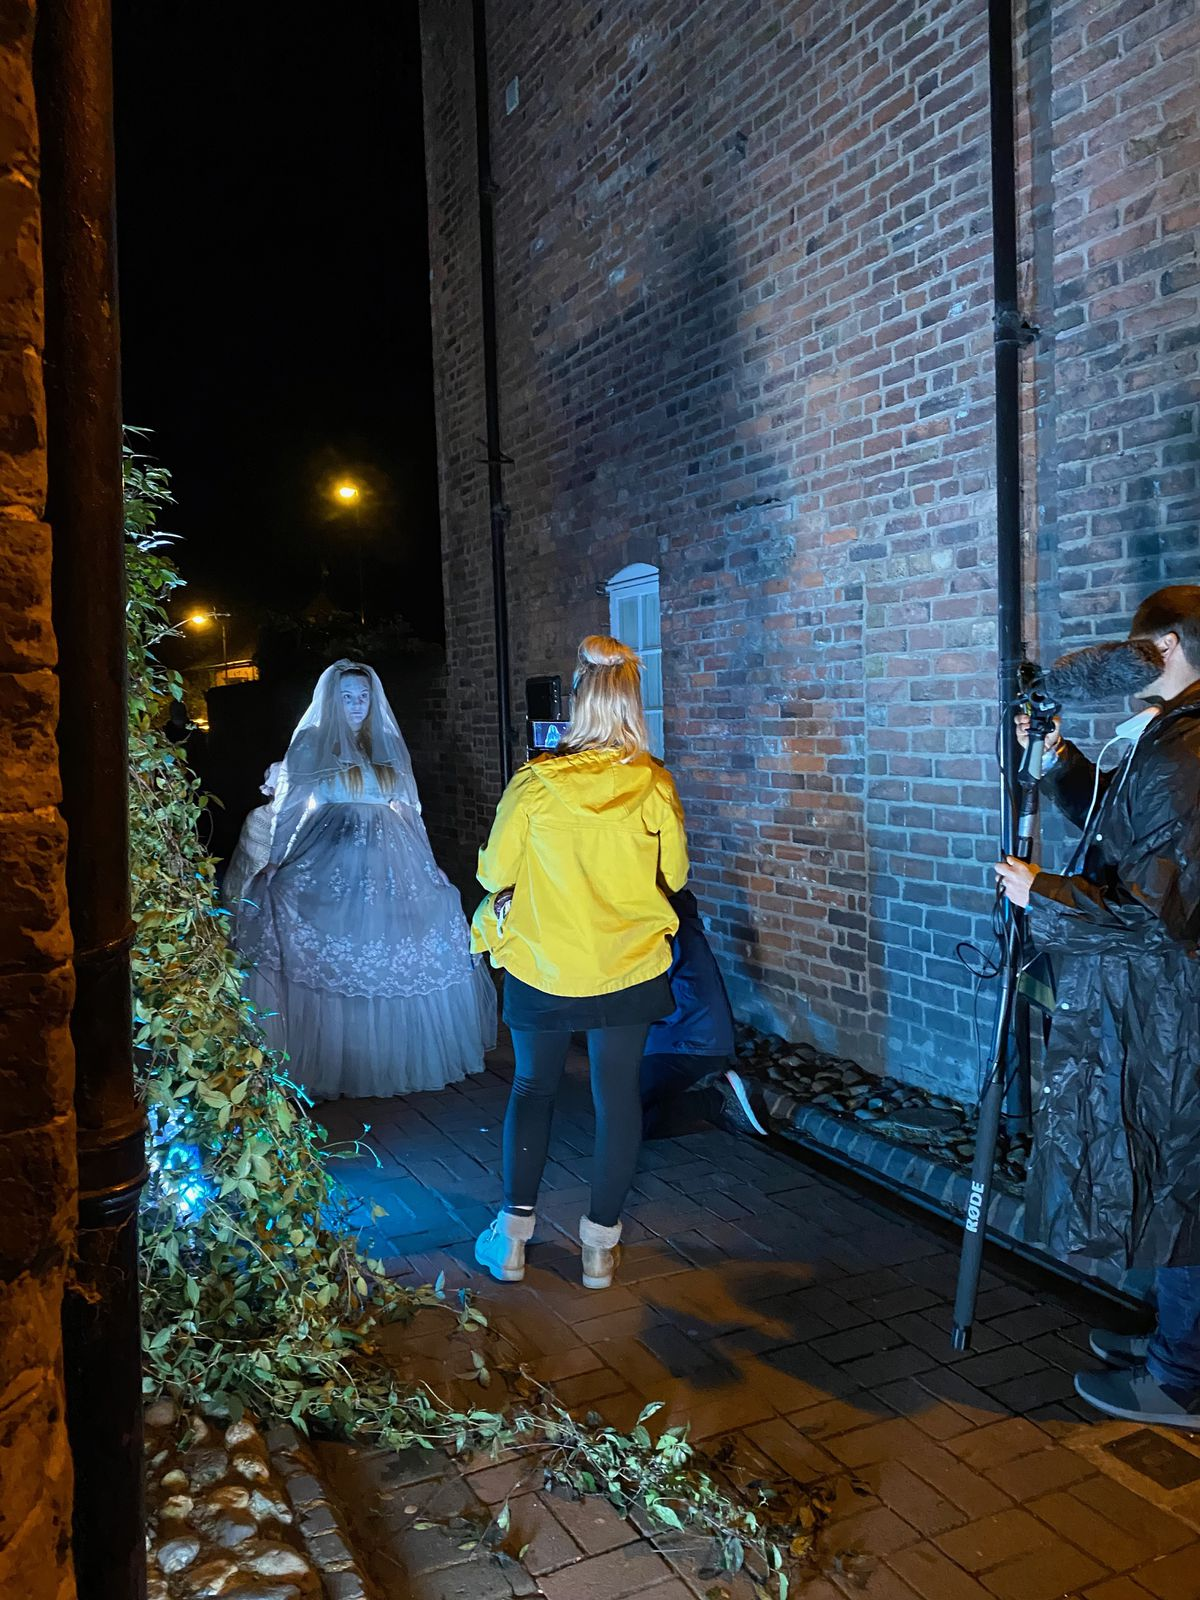 The film was recorded over several nights in September, with footage inside some of the locations that would not be possible on the Ghost Walk